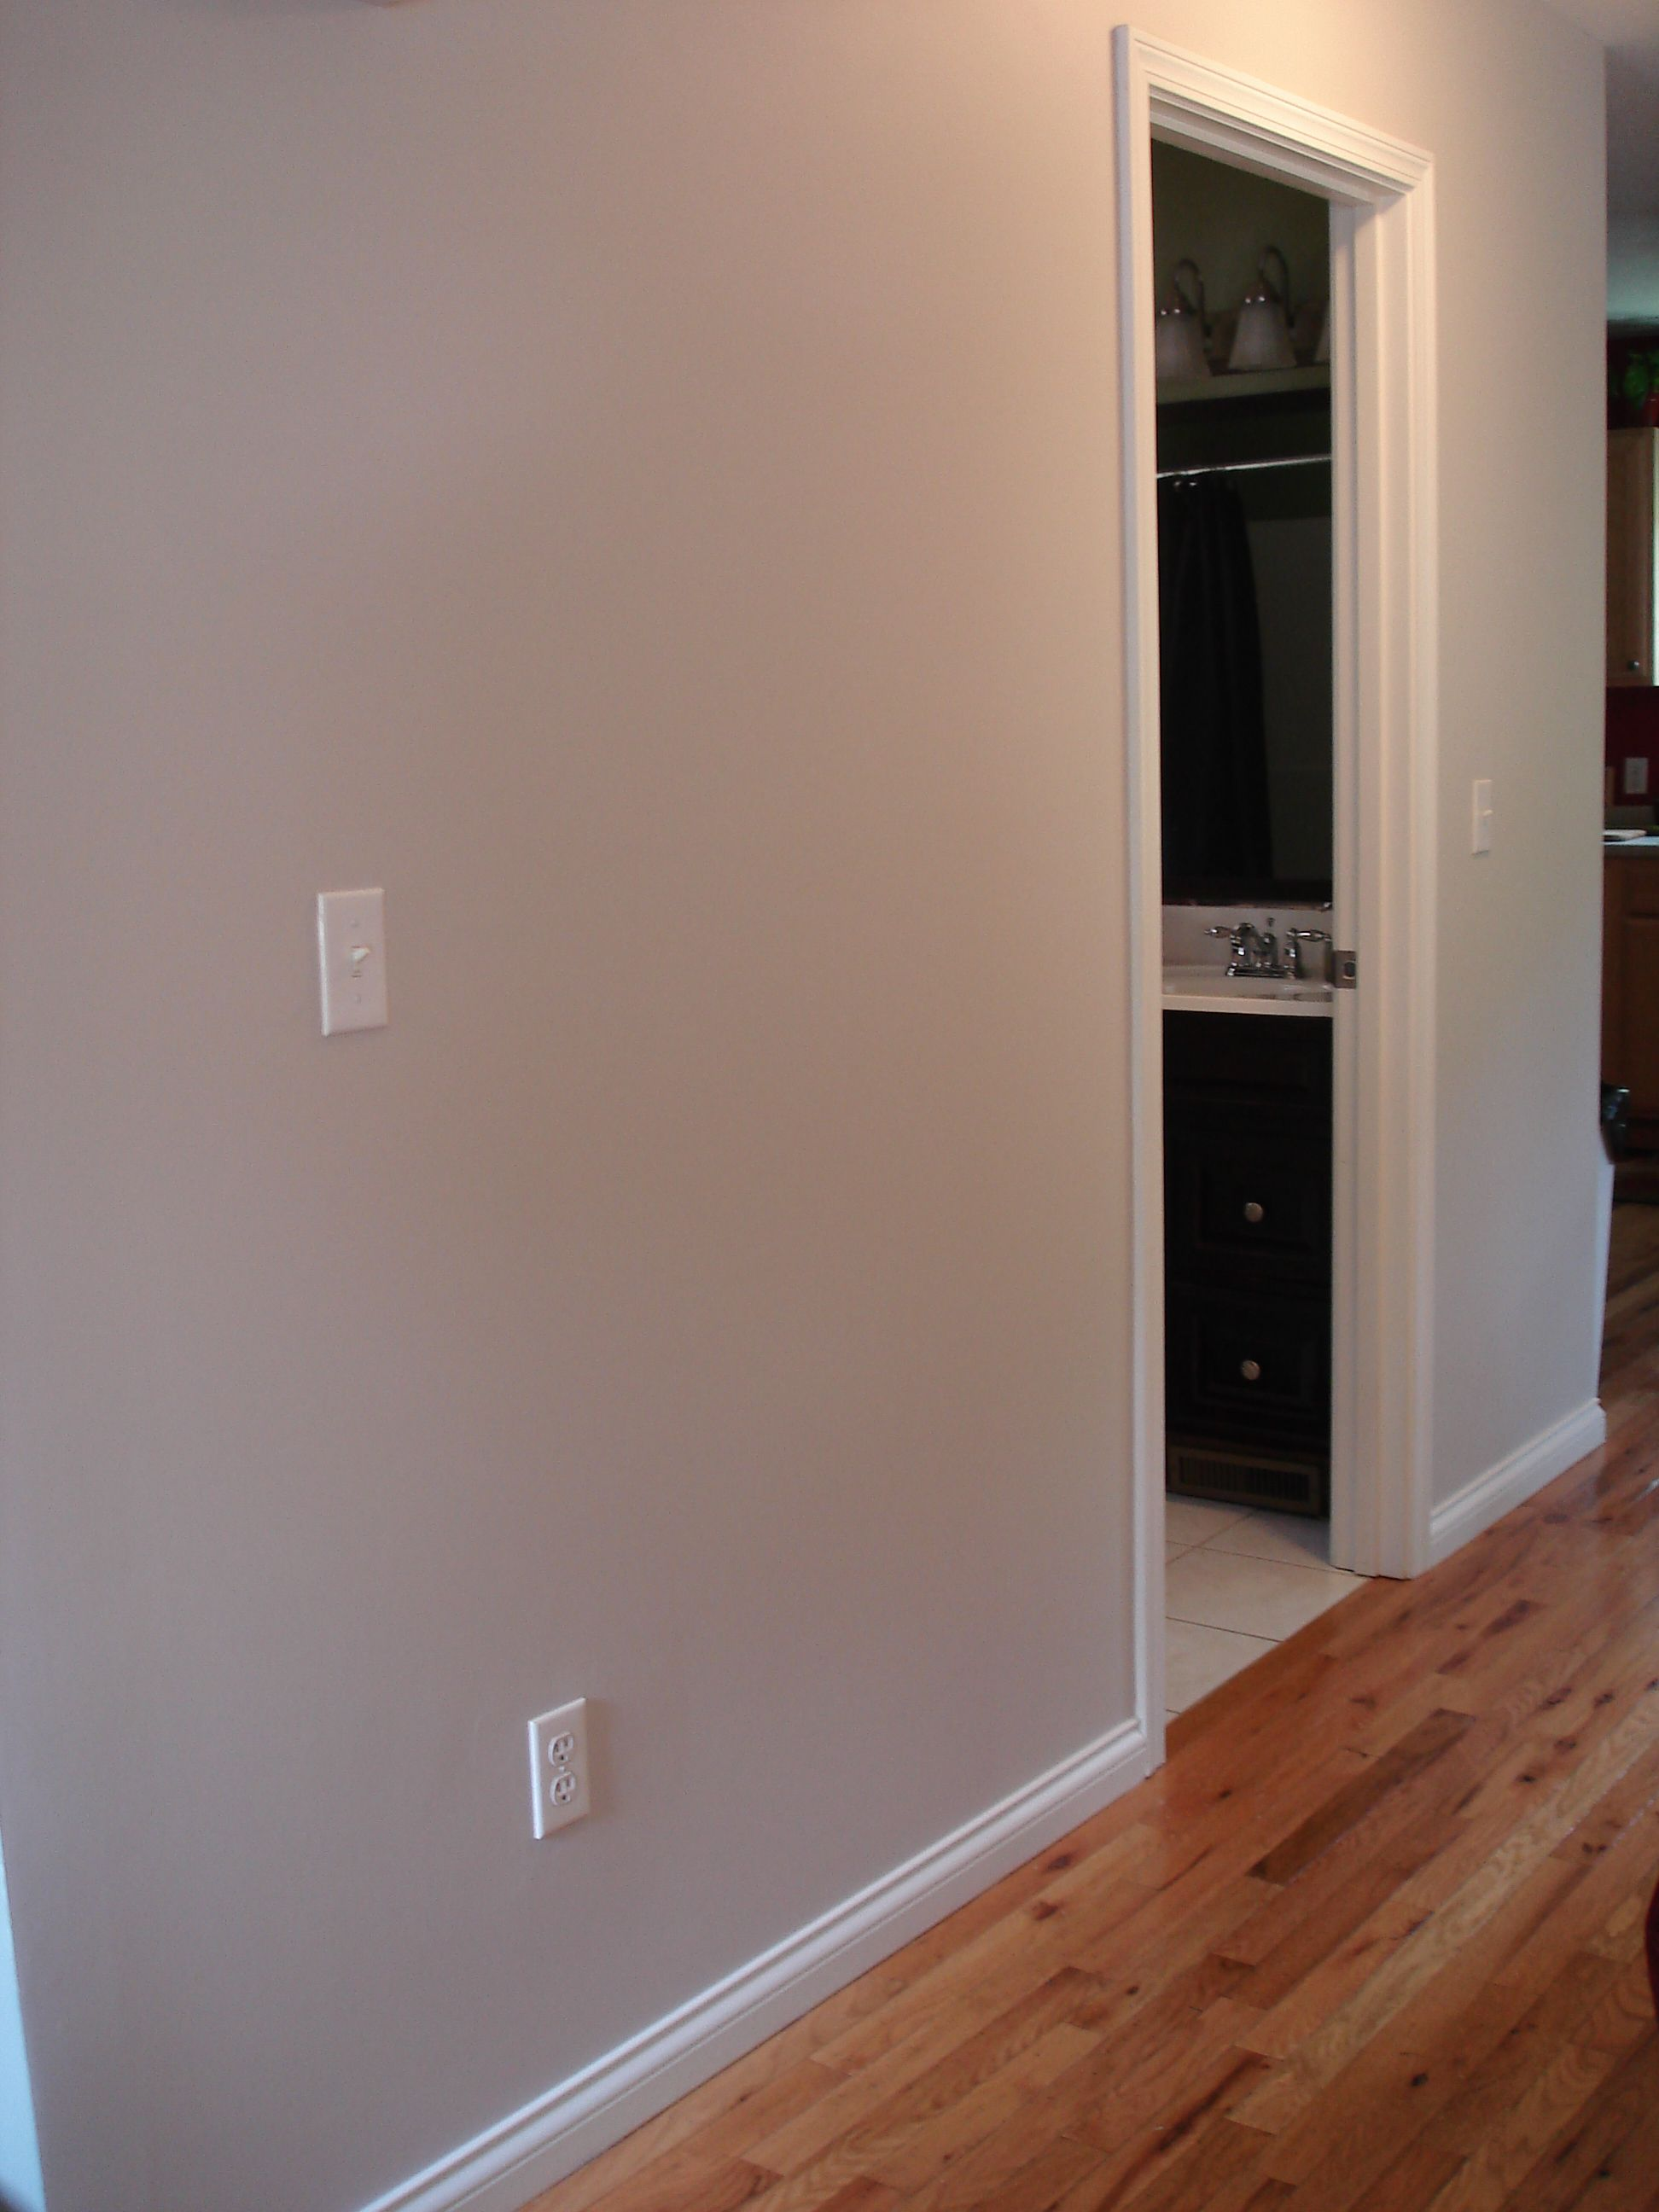 Bathroom paint ideas behr - Wall Color Burnished Clay From Behr Kids Bath